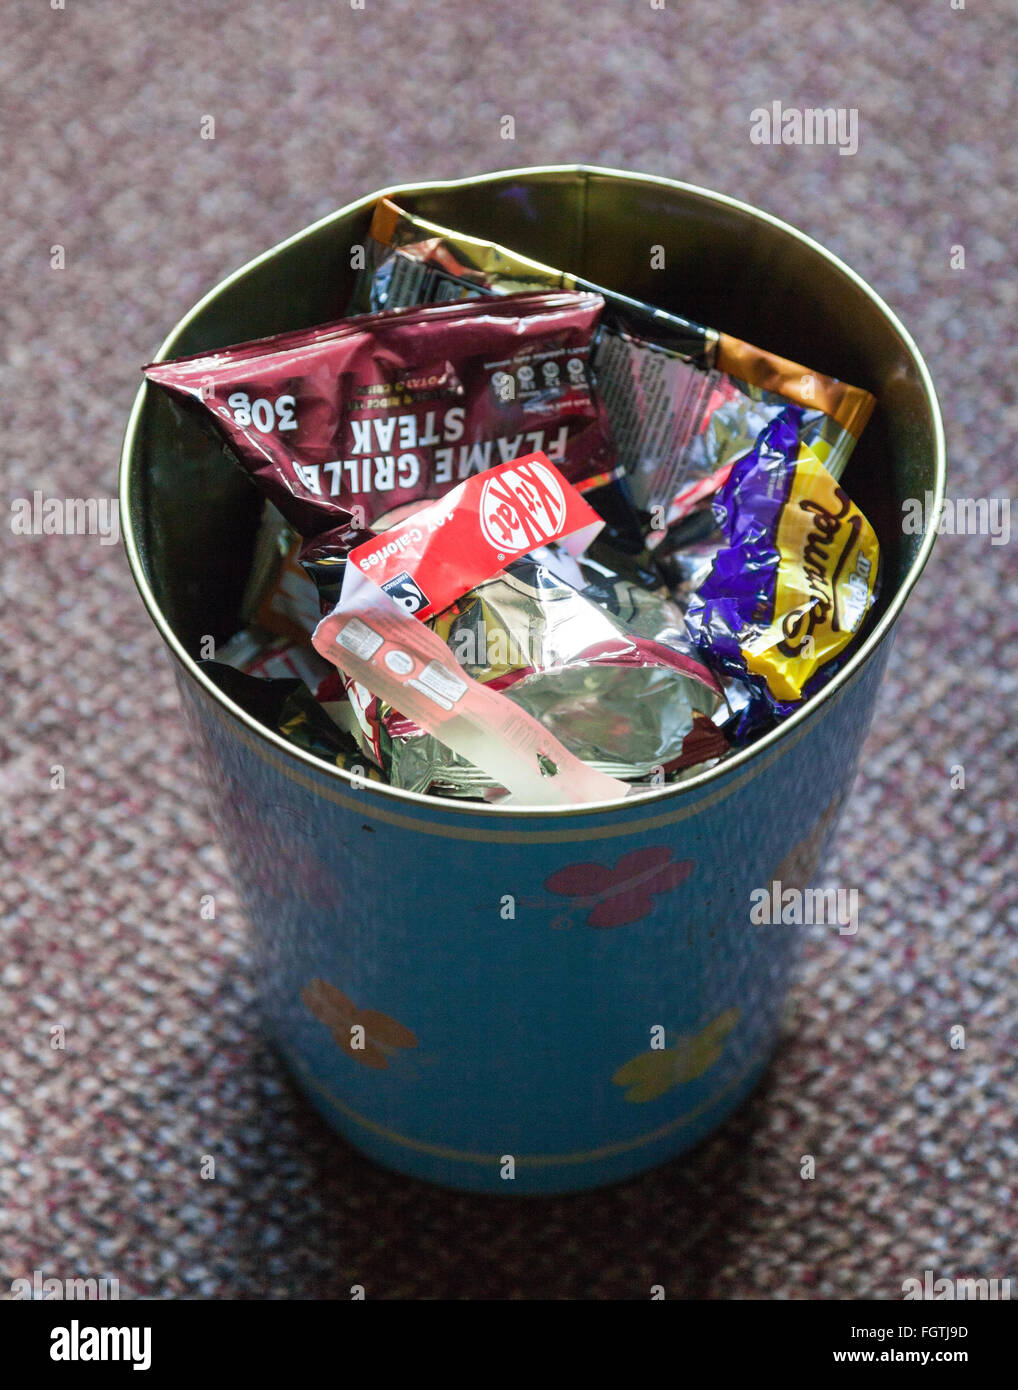 crisp-and-chocolate-bar-wrappers-in-a-waste-paper-bin-FGTJ9D.jpg